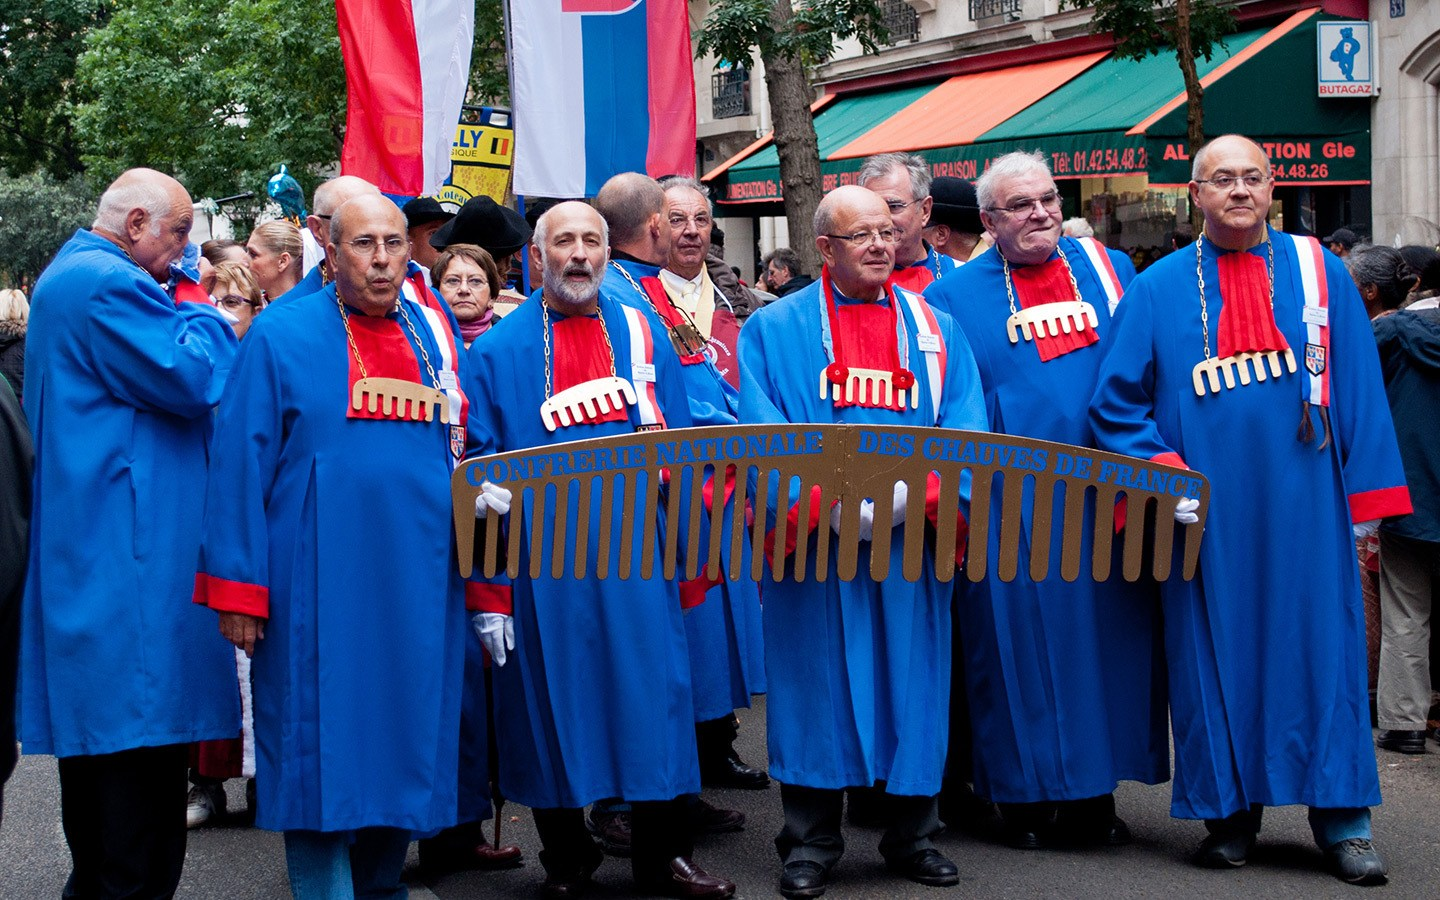 Fête des Vendanges in Montmartre, Paris